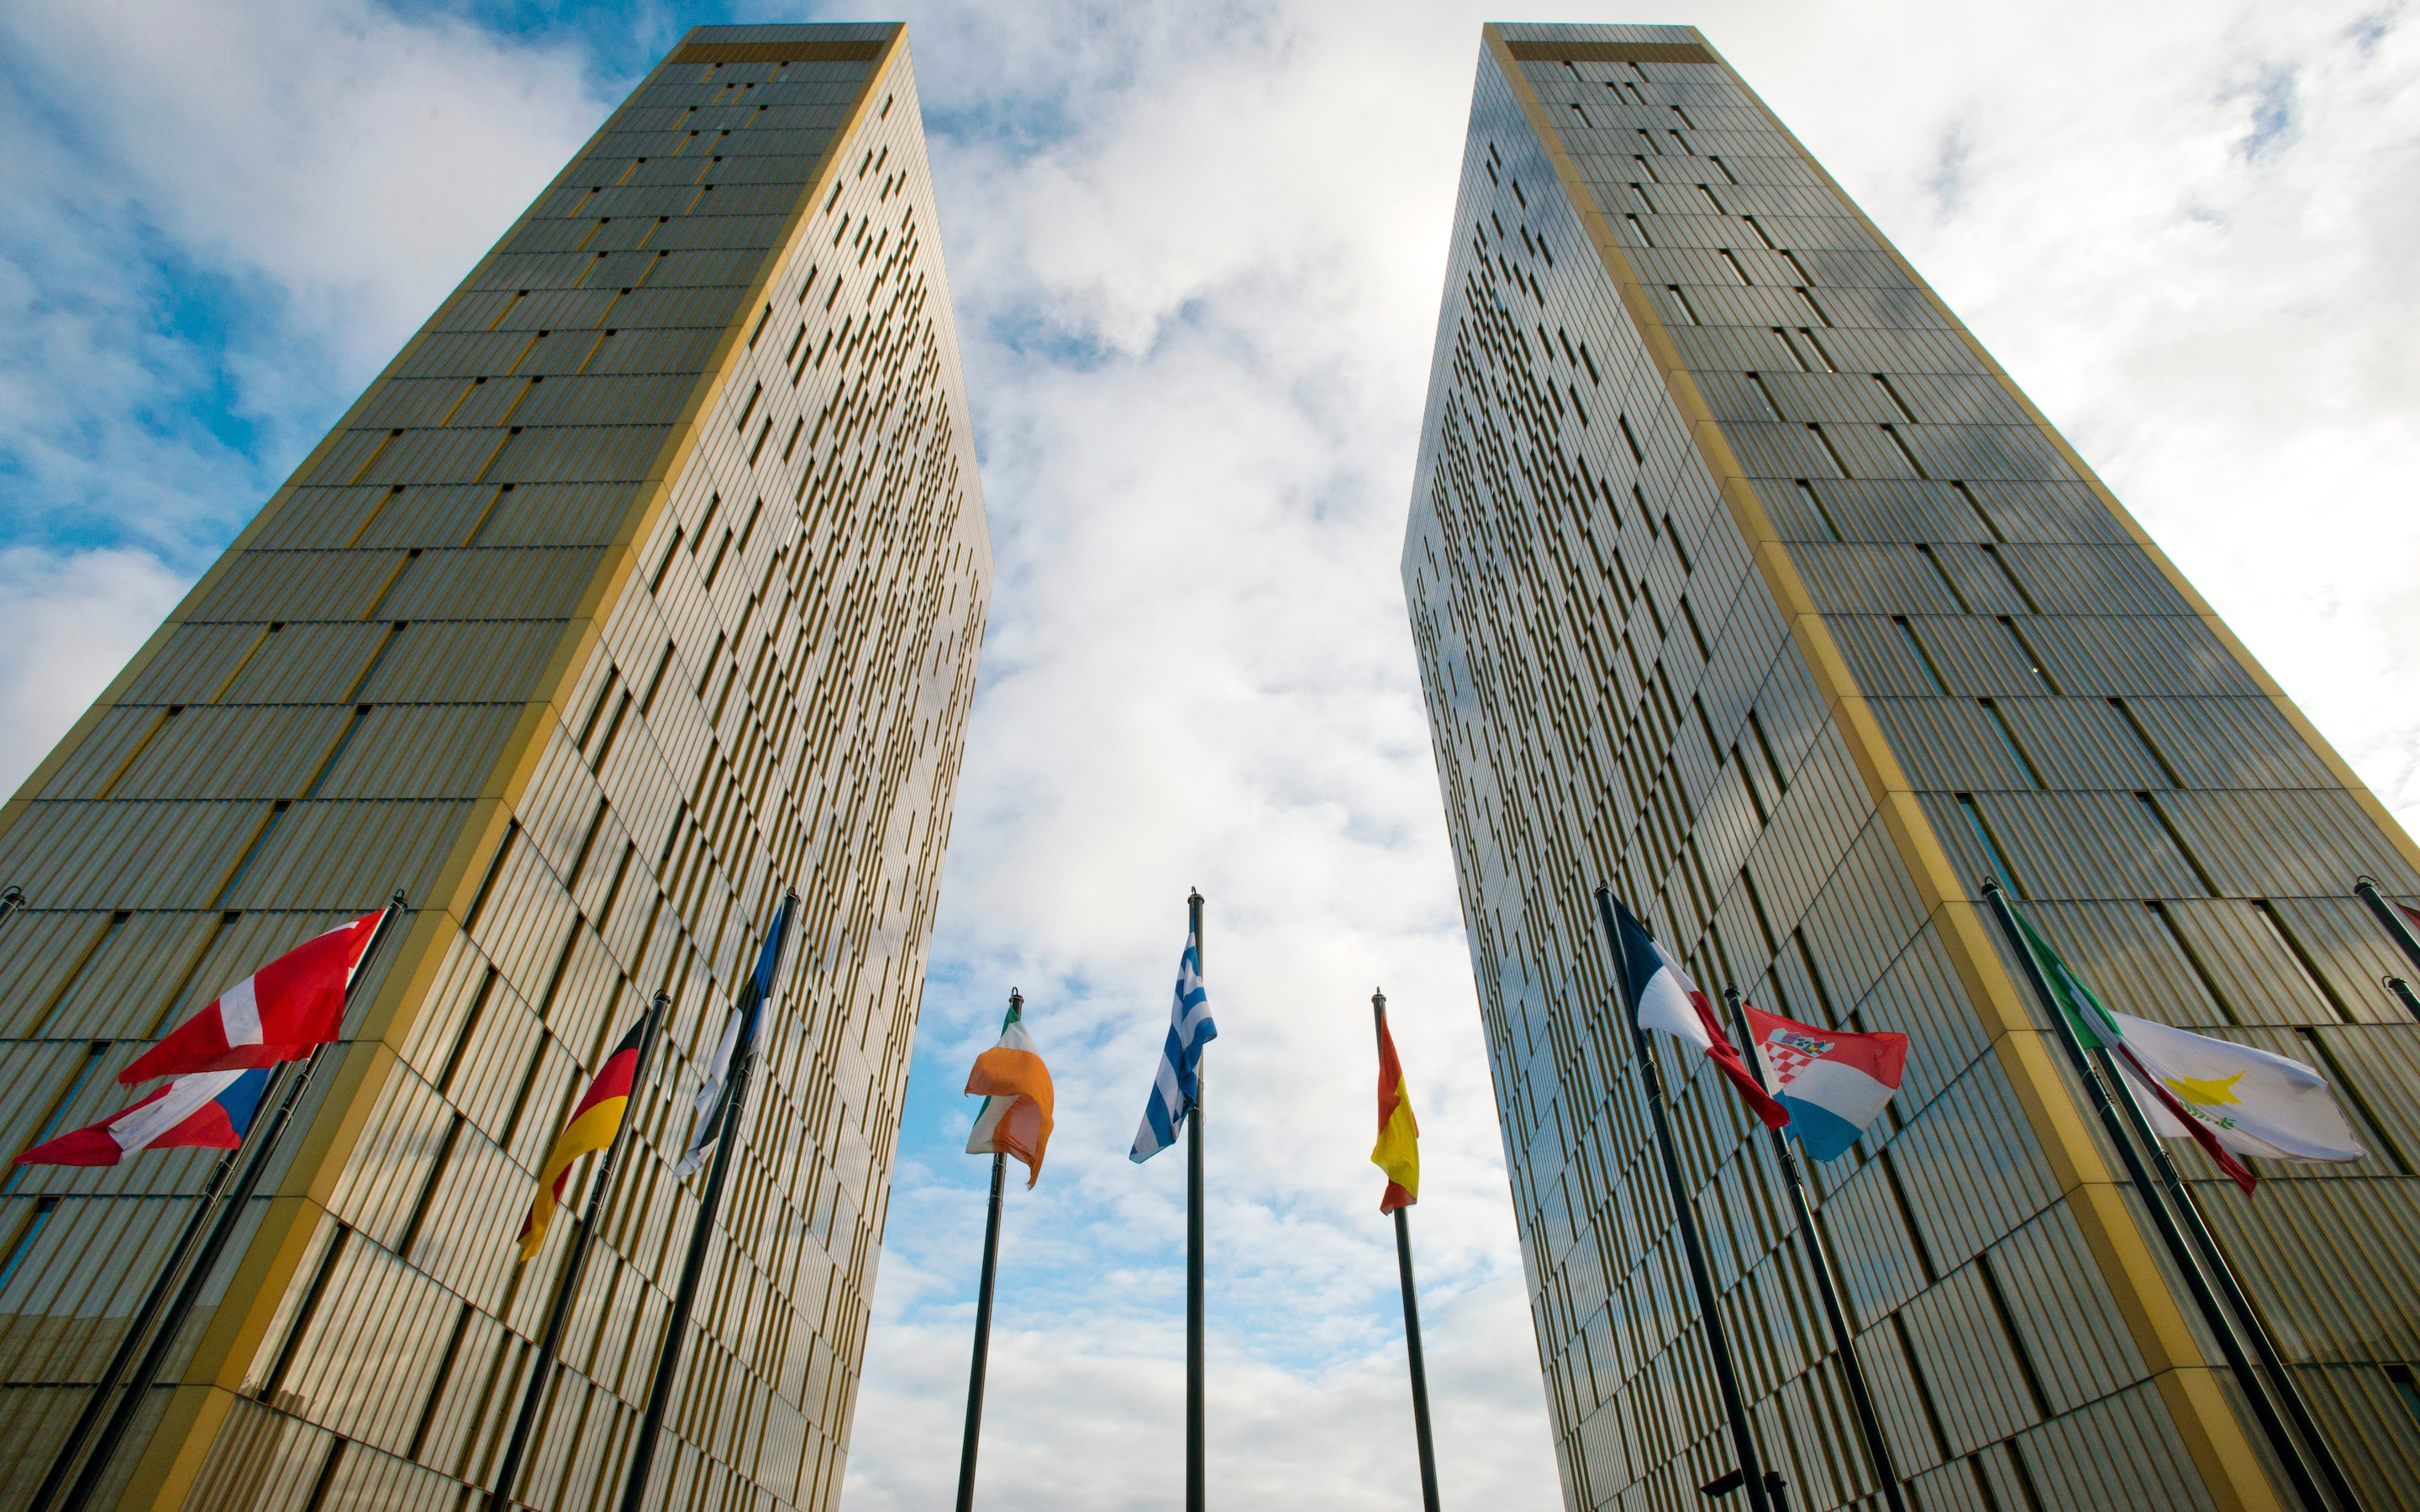 The twin towers of the European Court of Justice in Luxembourg